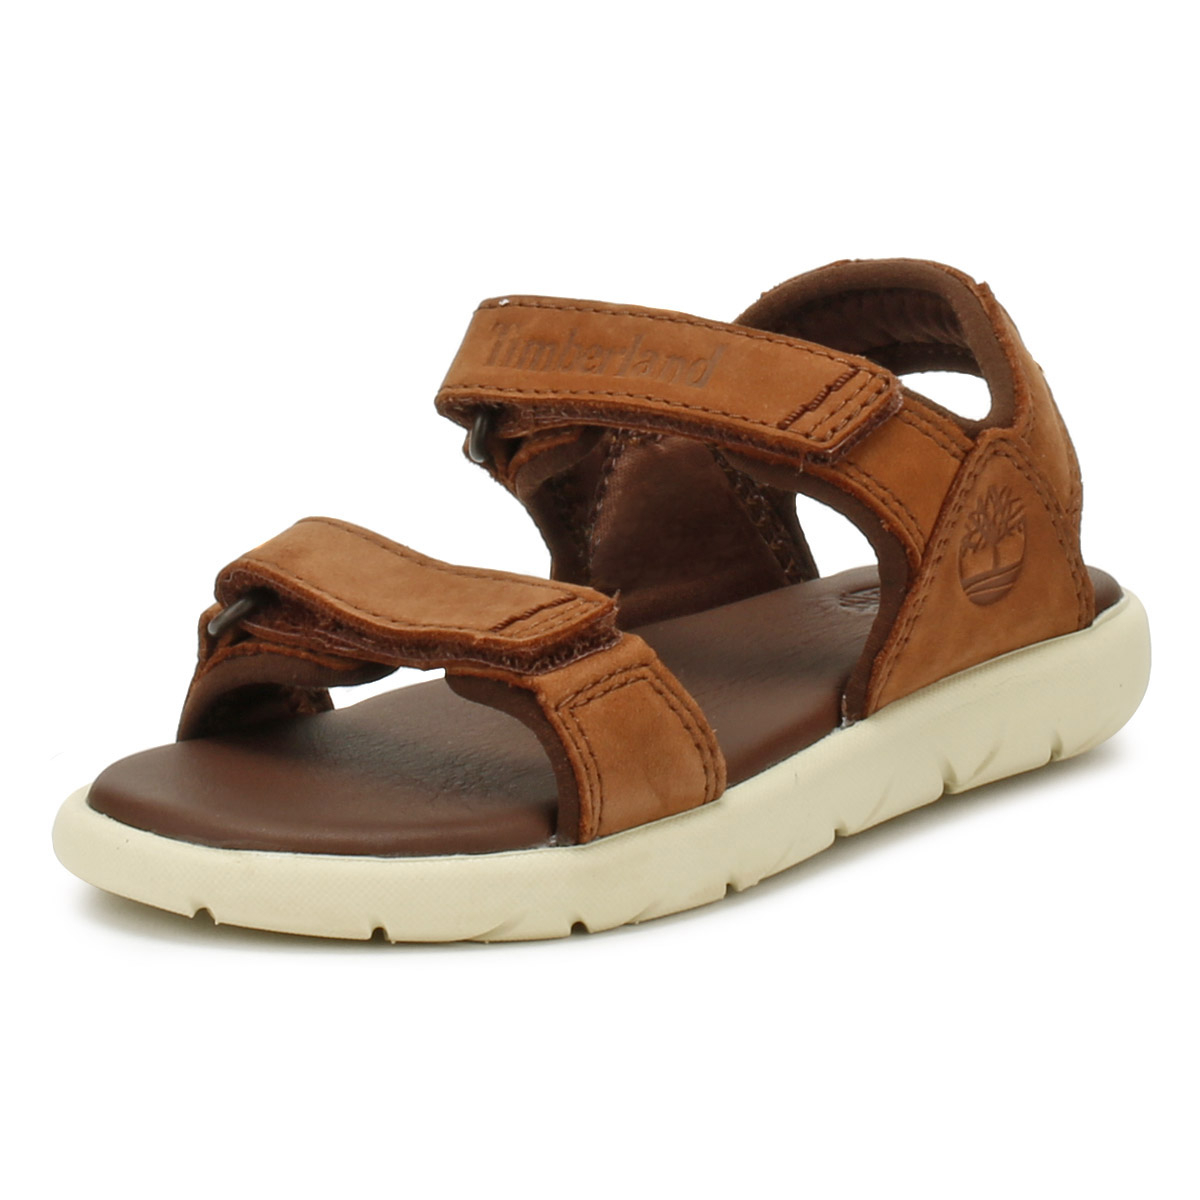 Details about Timberland Toddlers Sandals Cappudcino Brown Nubble 2-Strap  Kids Summer Shoes fd8e34ae8acd5